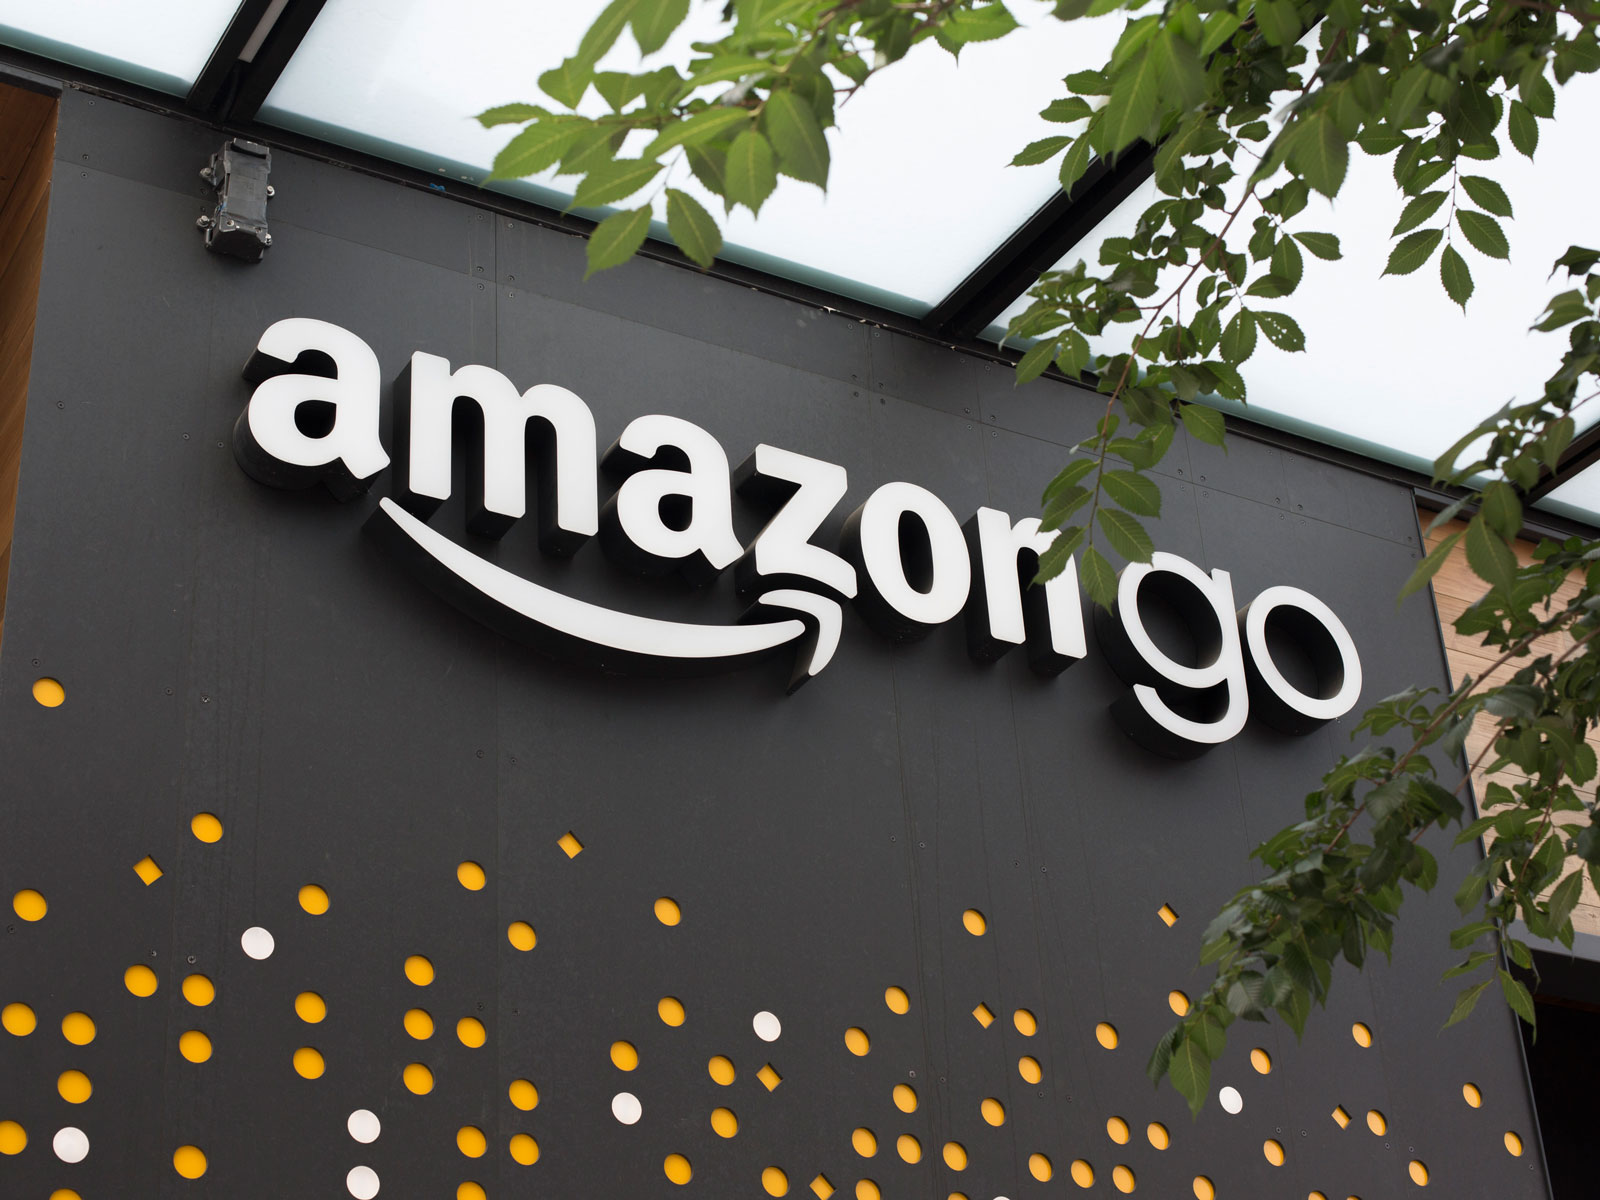 Amazon to Launch New Physical Grocery Store Chain Business